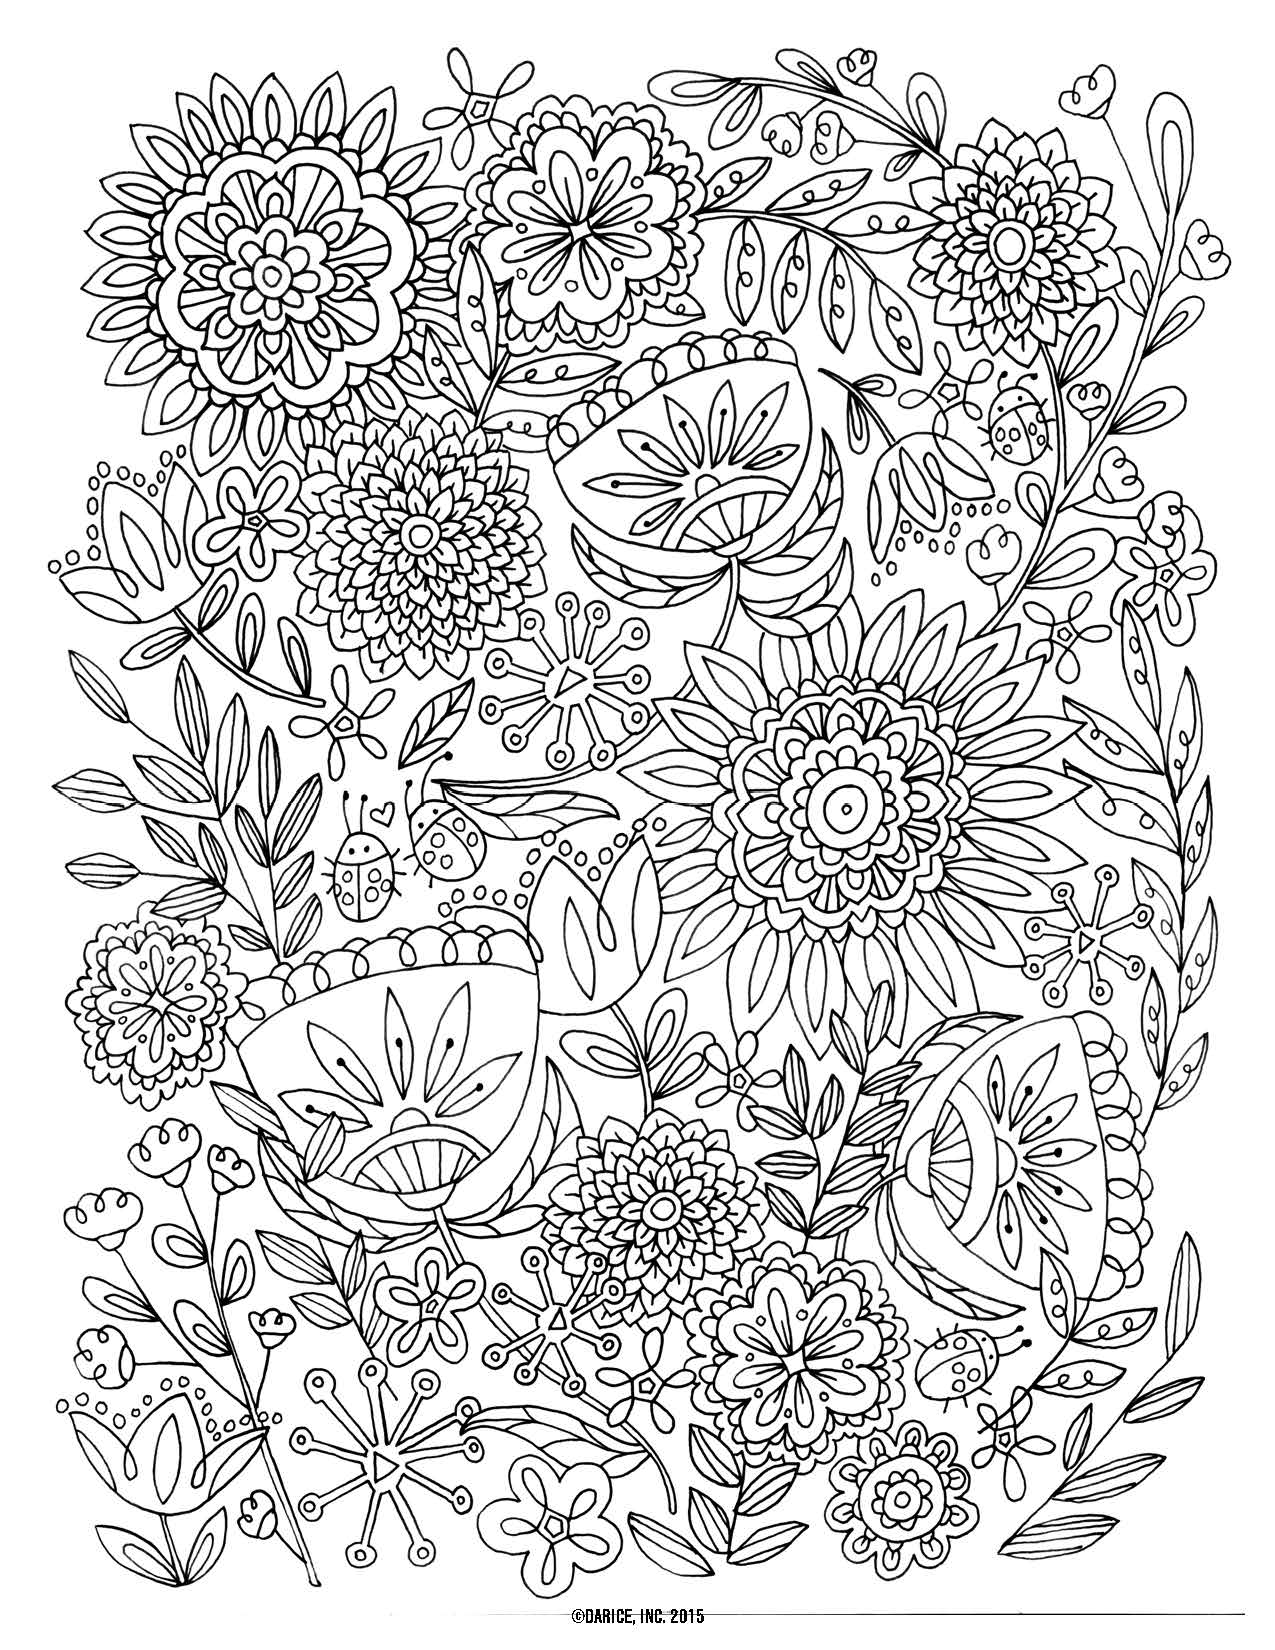 Special Free Pictures To Color For Adults Coloring Pages Printable